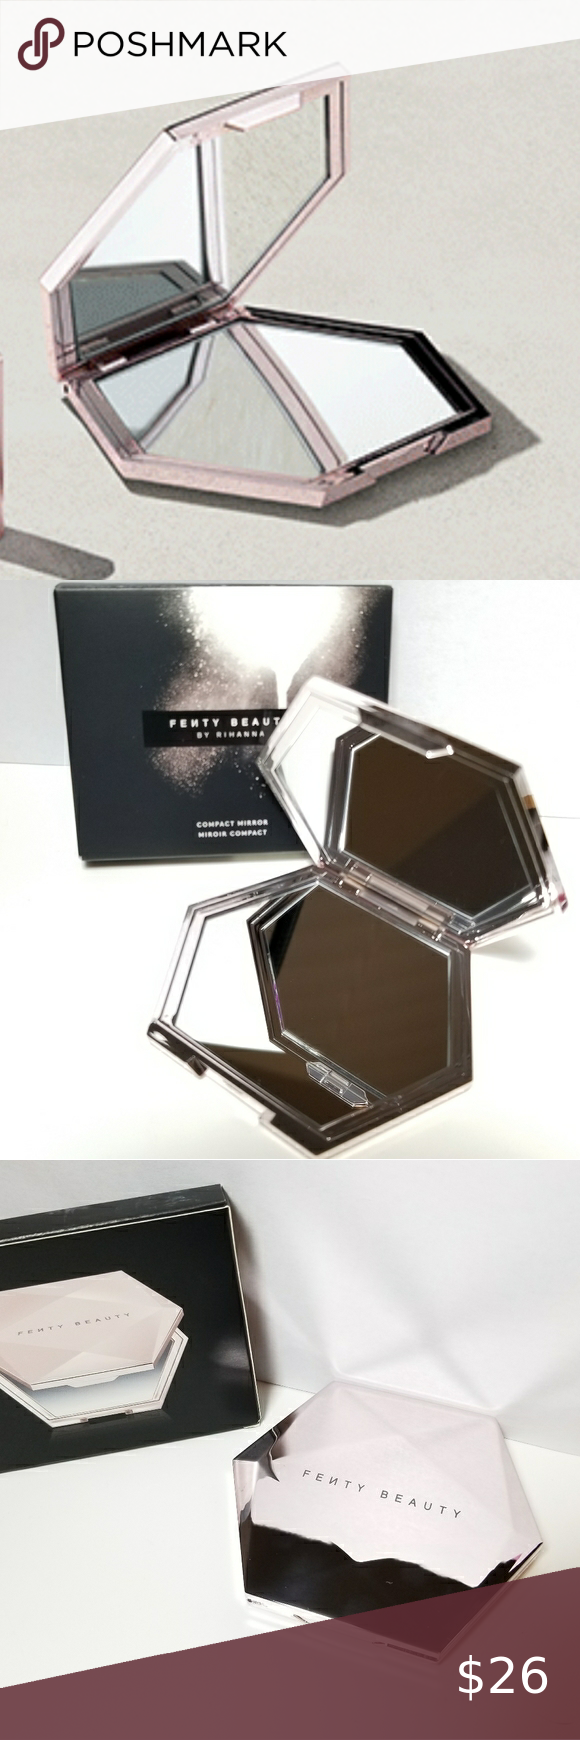 Fenty Beauty Compact Mirror Brand new Never used or tested Luxurious feel Not available in stores Limited edition Fenty Beauty Makeup